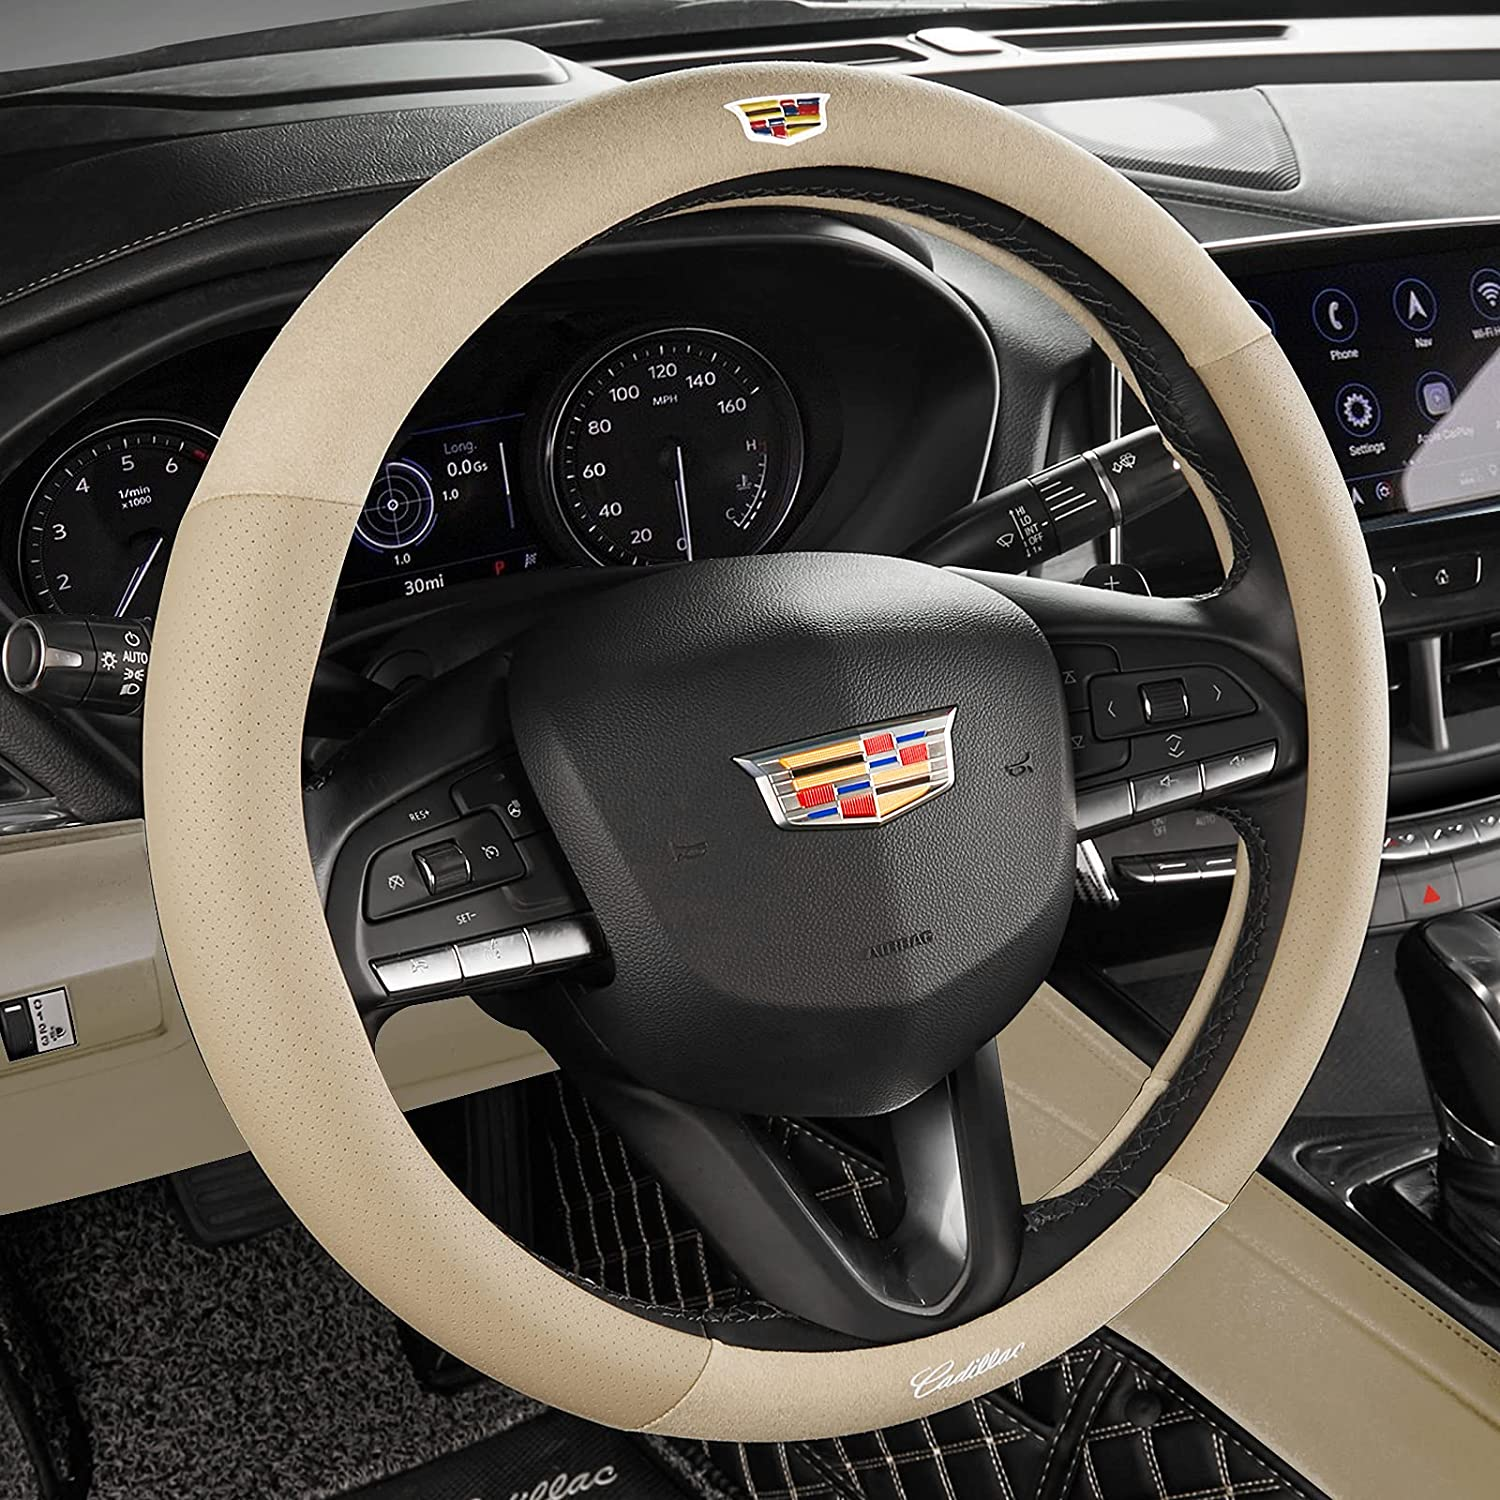 Custom-Fit Car Steering Wheel Cover for CT4 CT6 CT5 Daily bargain sale trust Cadillac